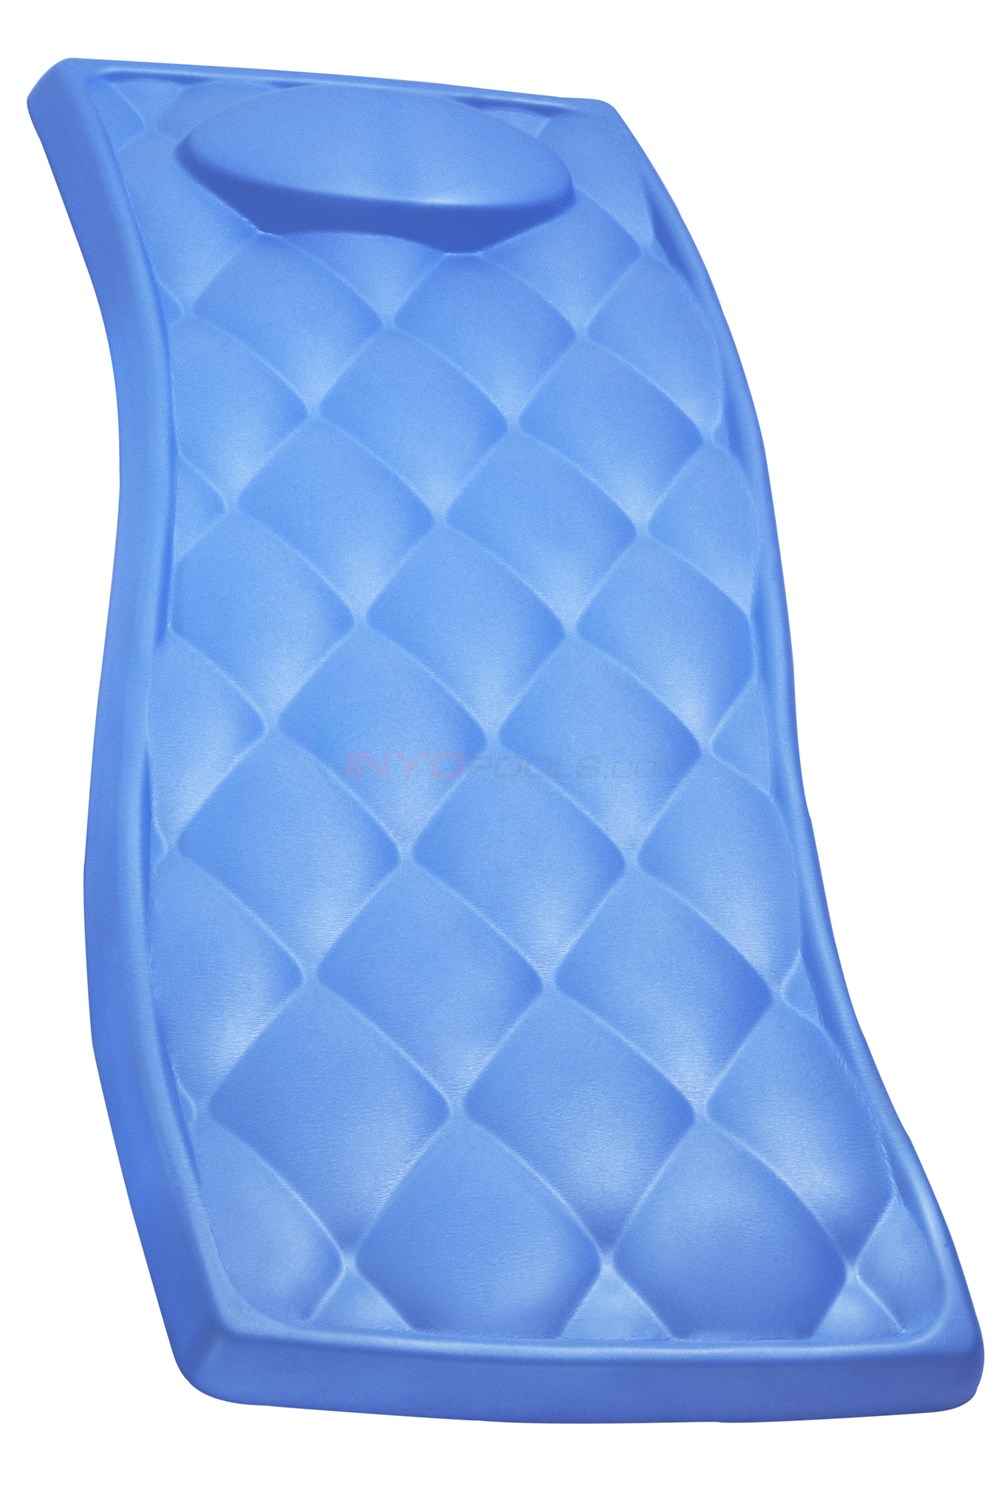 Spongex Avena Delux Pool Float - Blue - NT1042